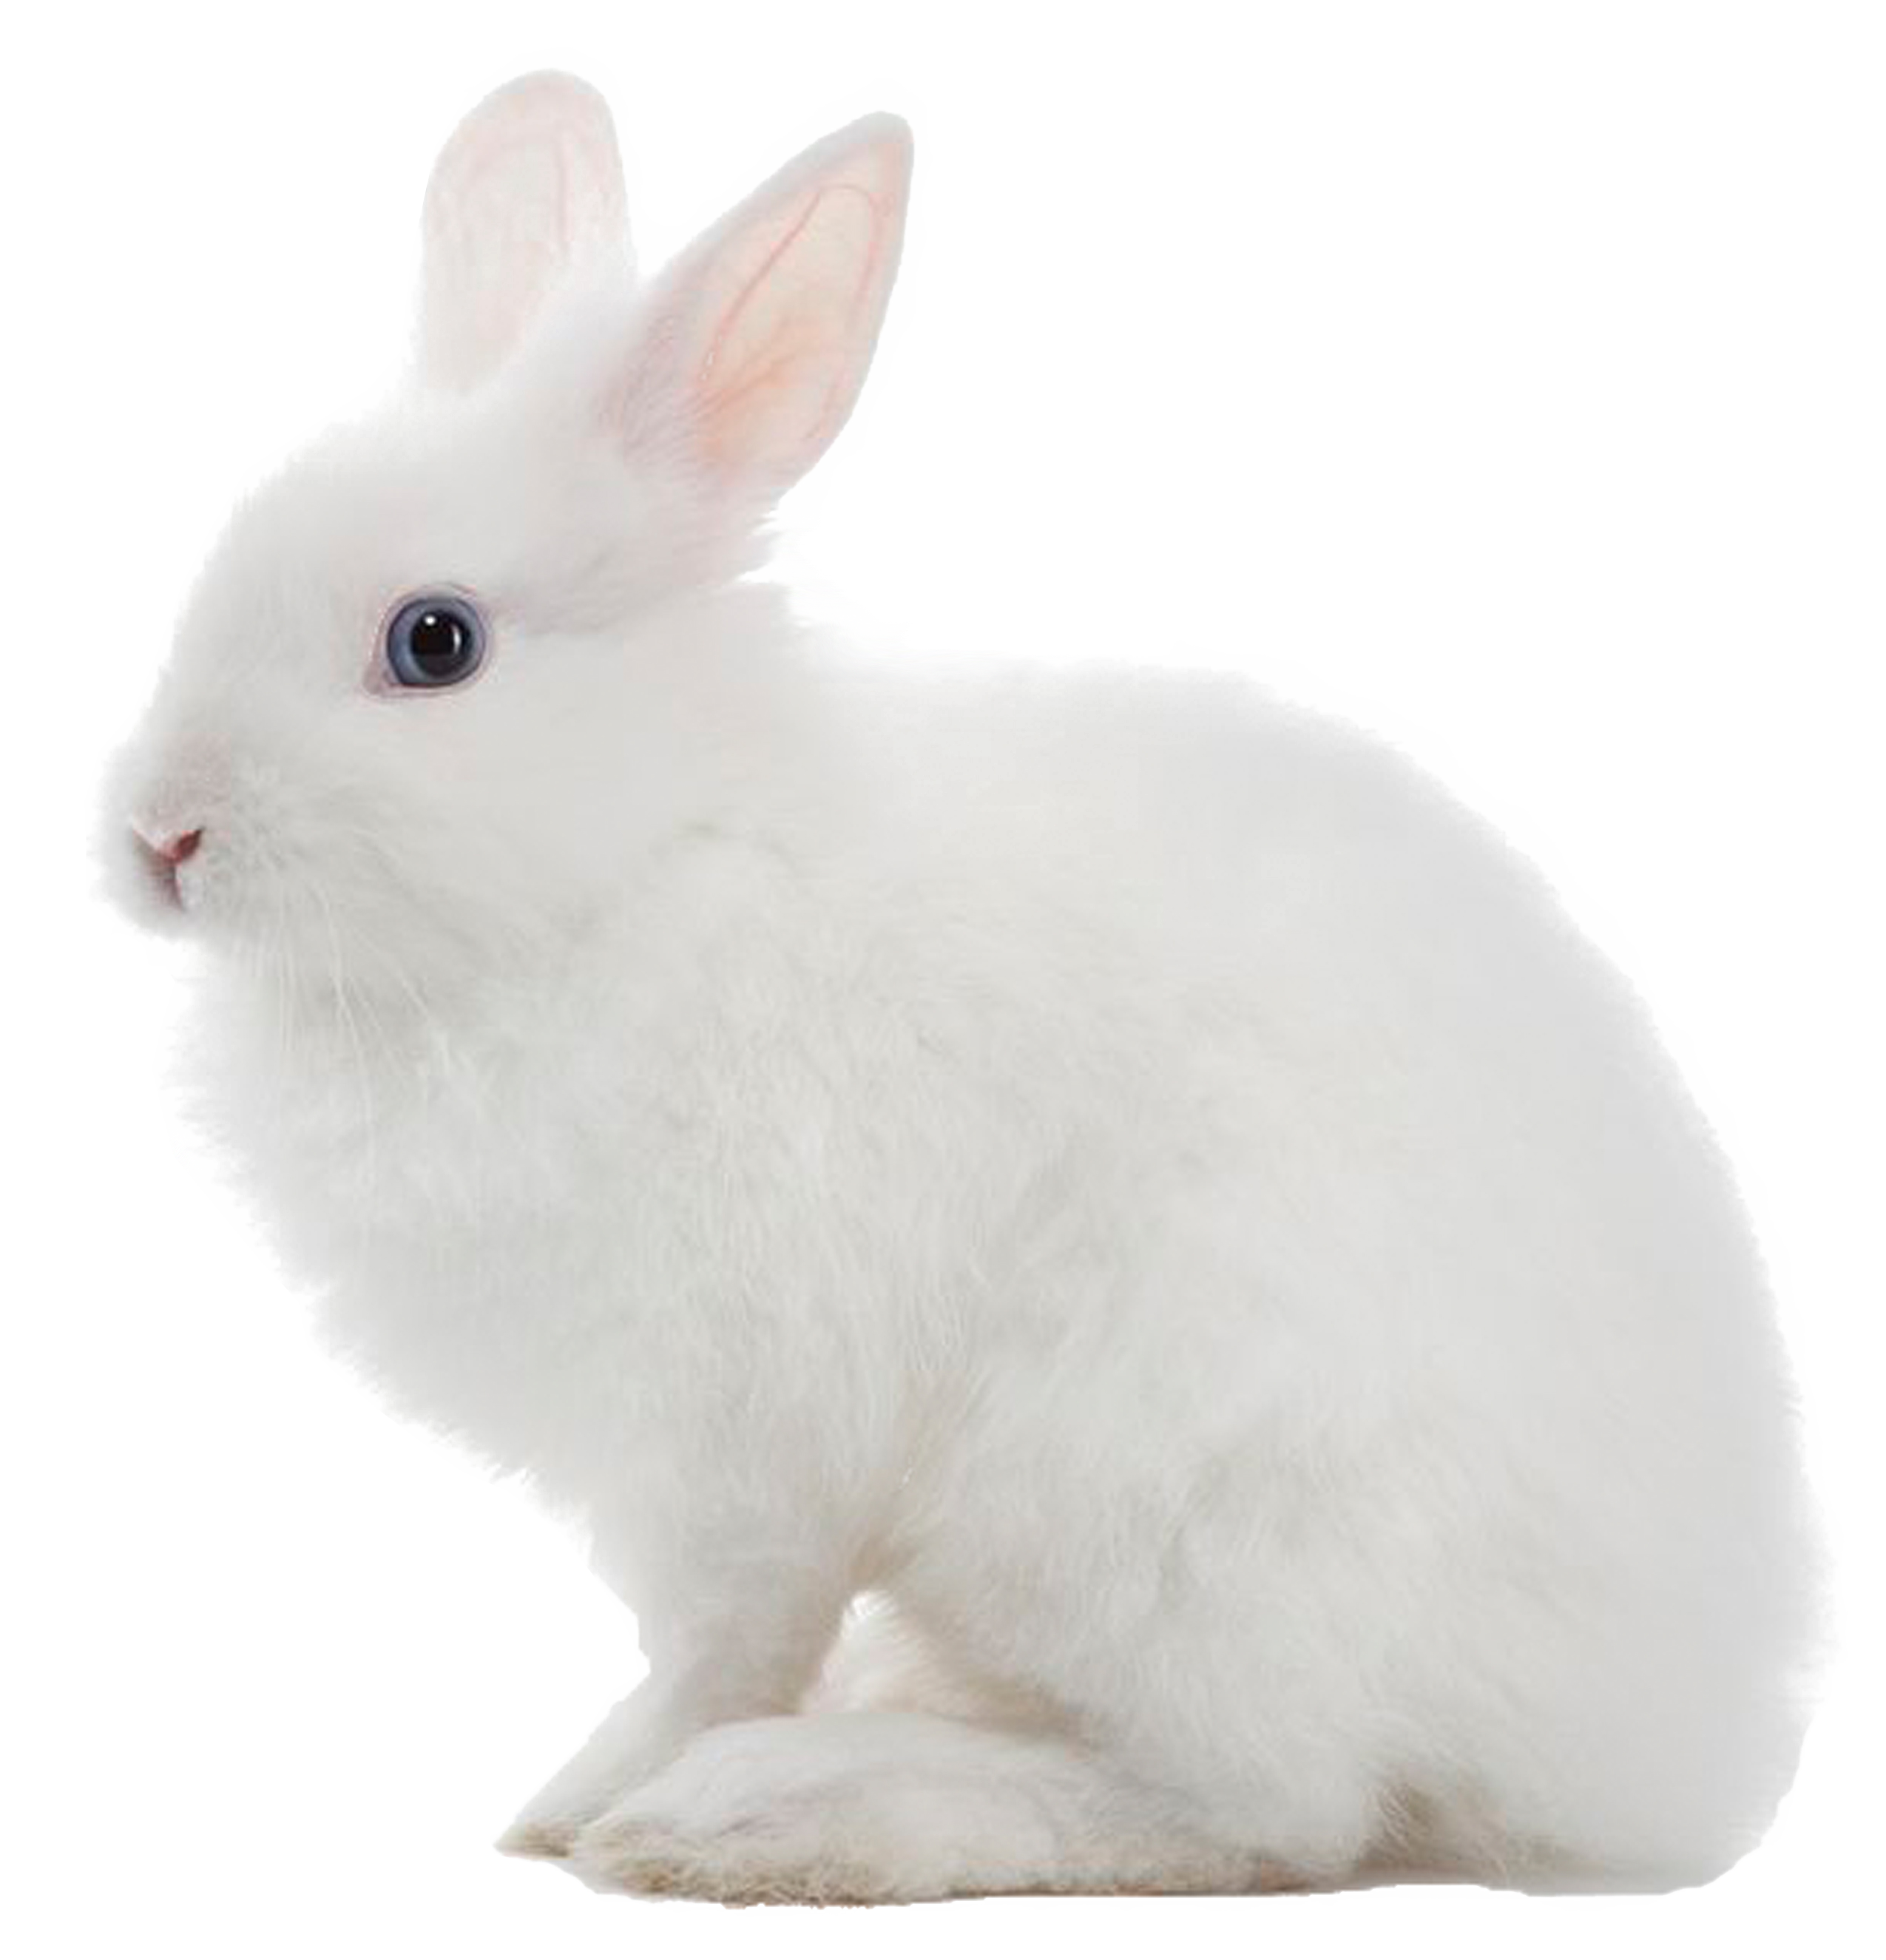 White rabbit png image. Clipart bunny arctic hare